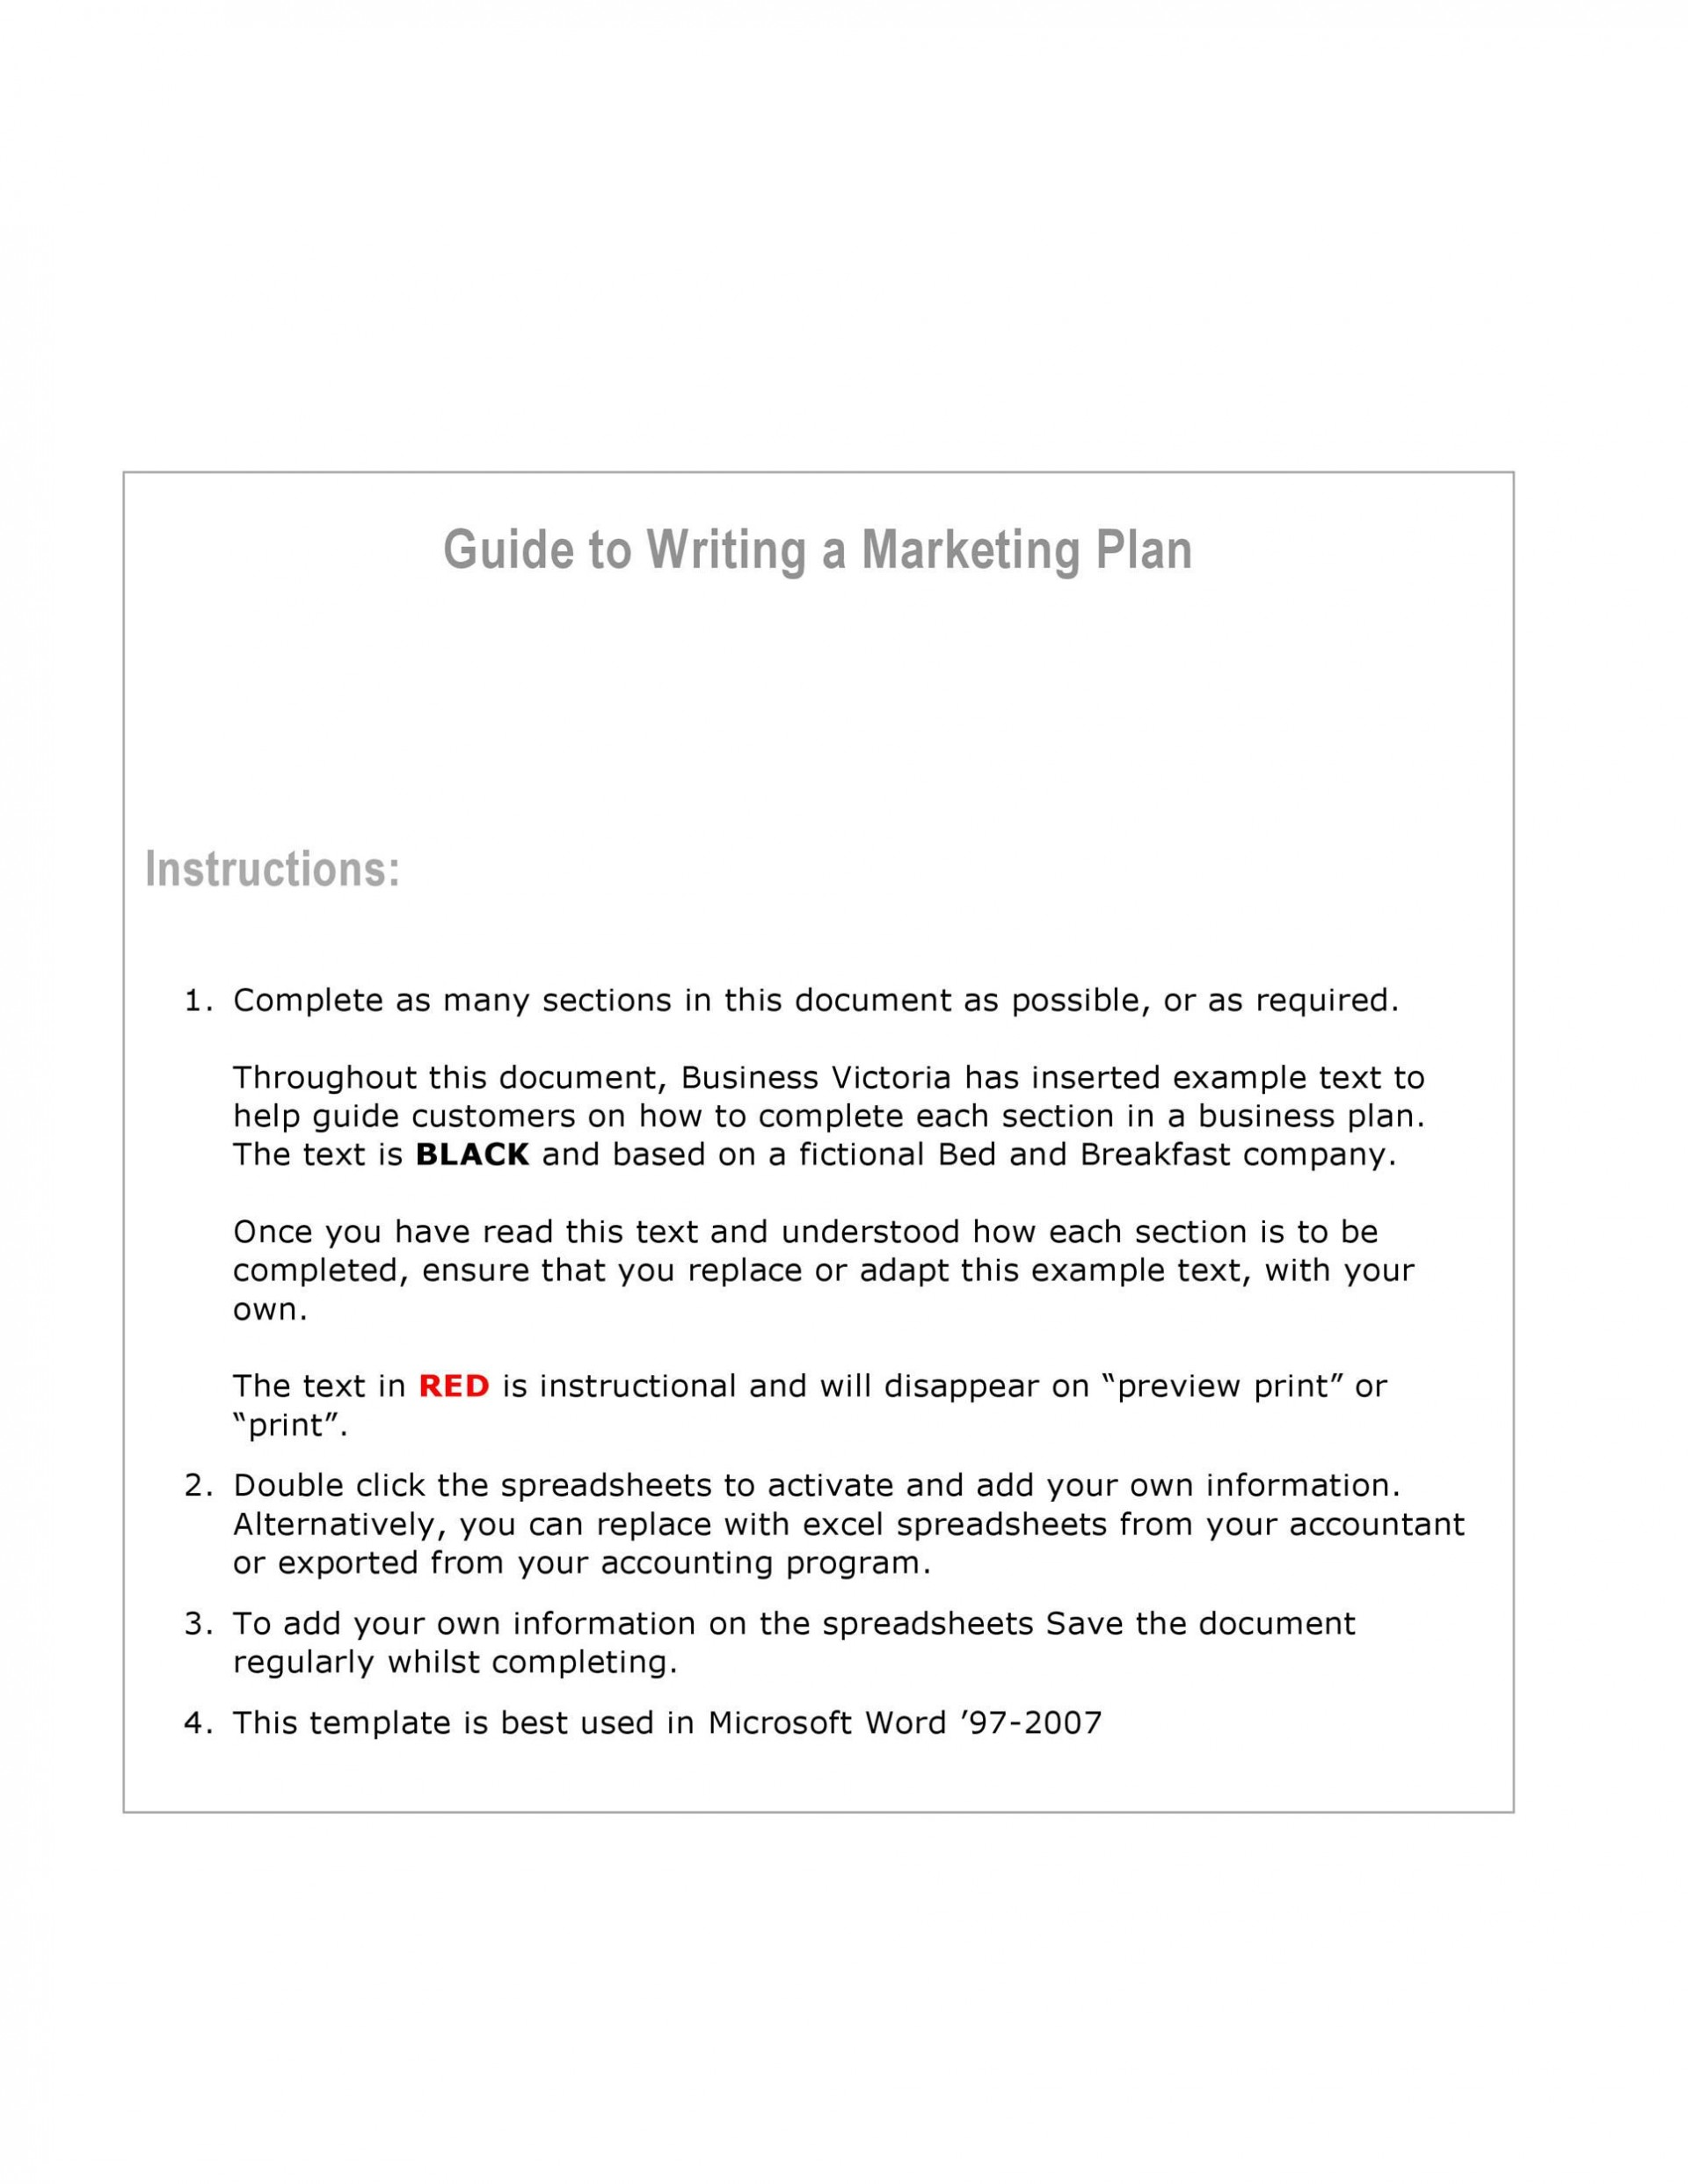 008 Remarkable Marketing Plan Template Word Free Download High Resolution 1920